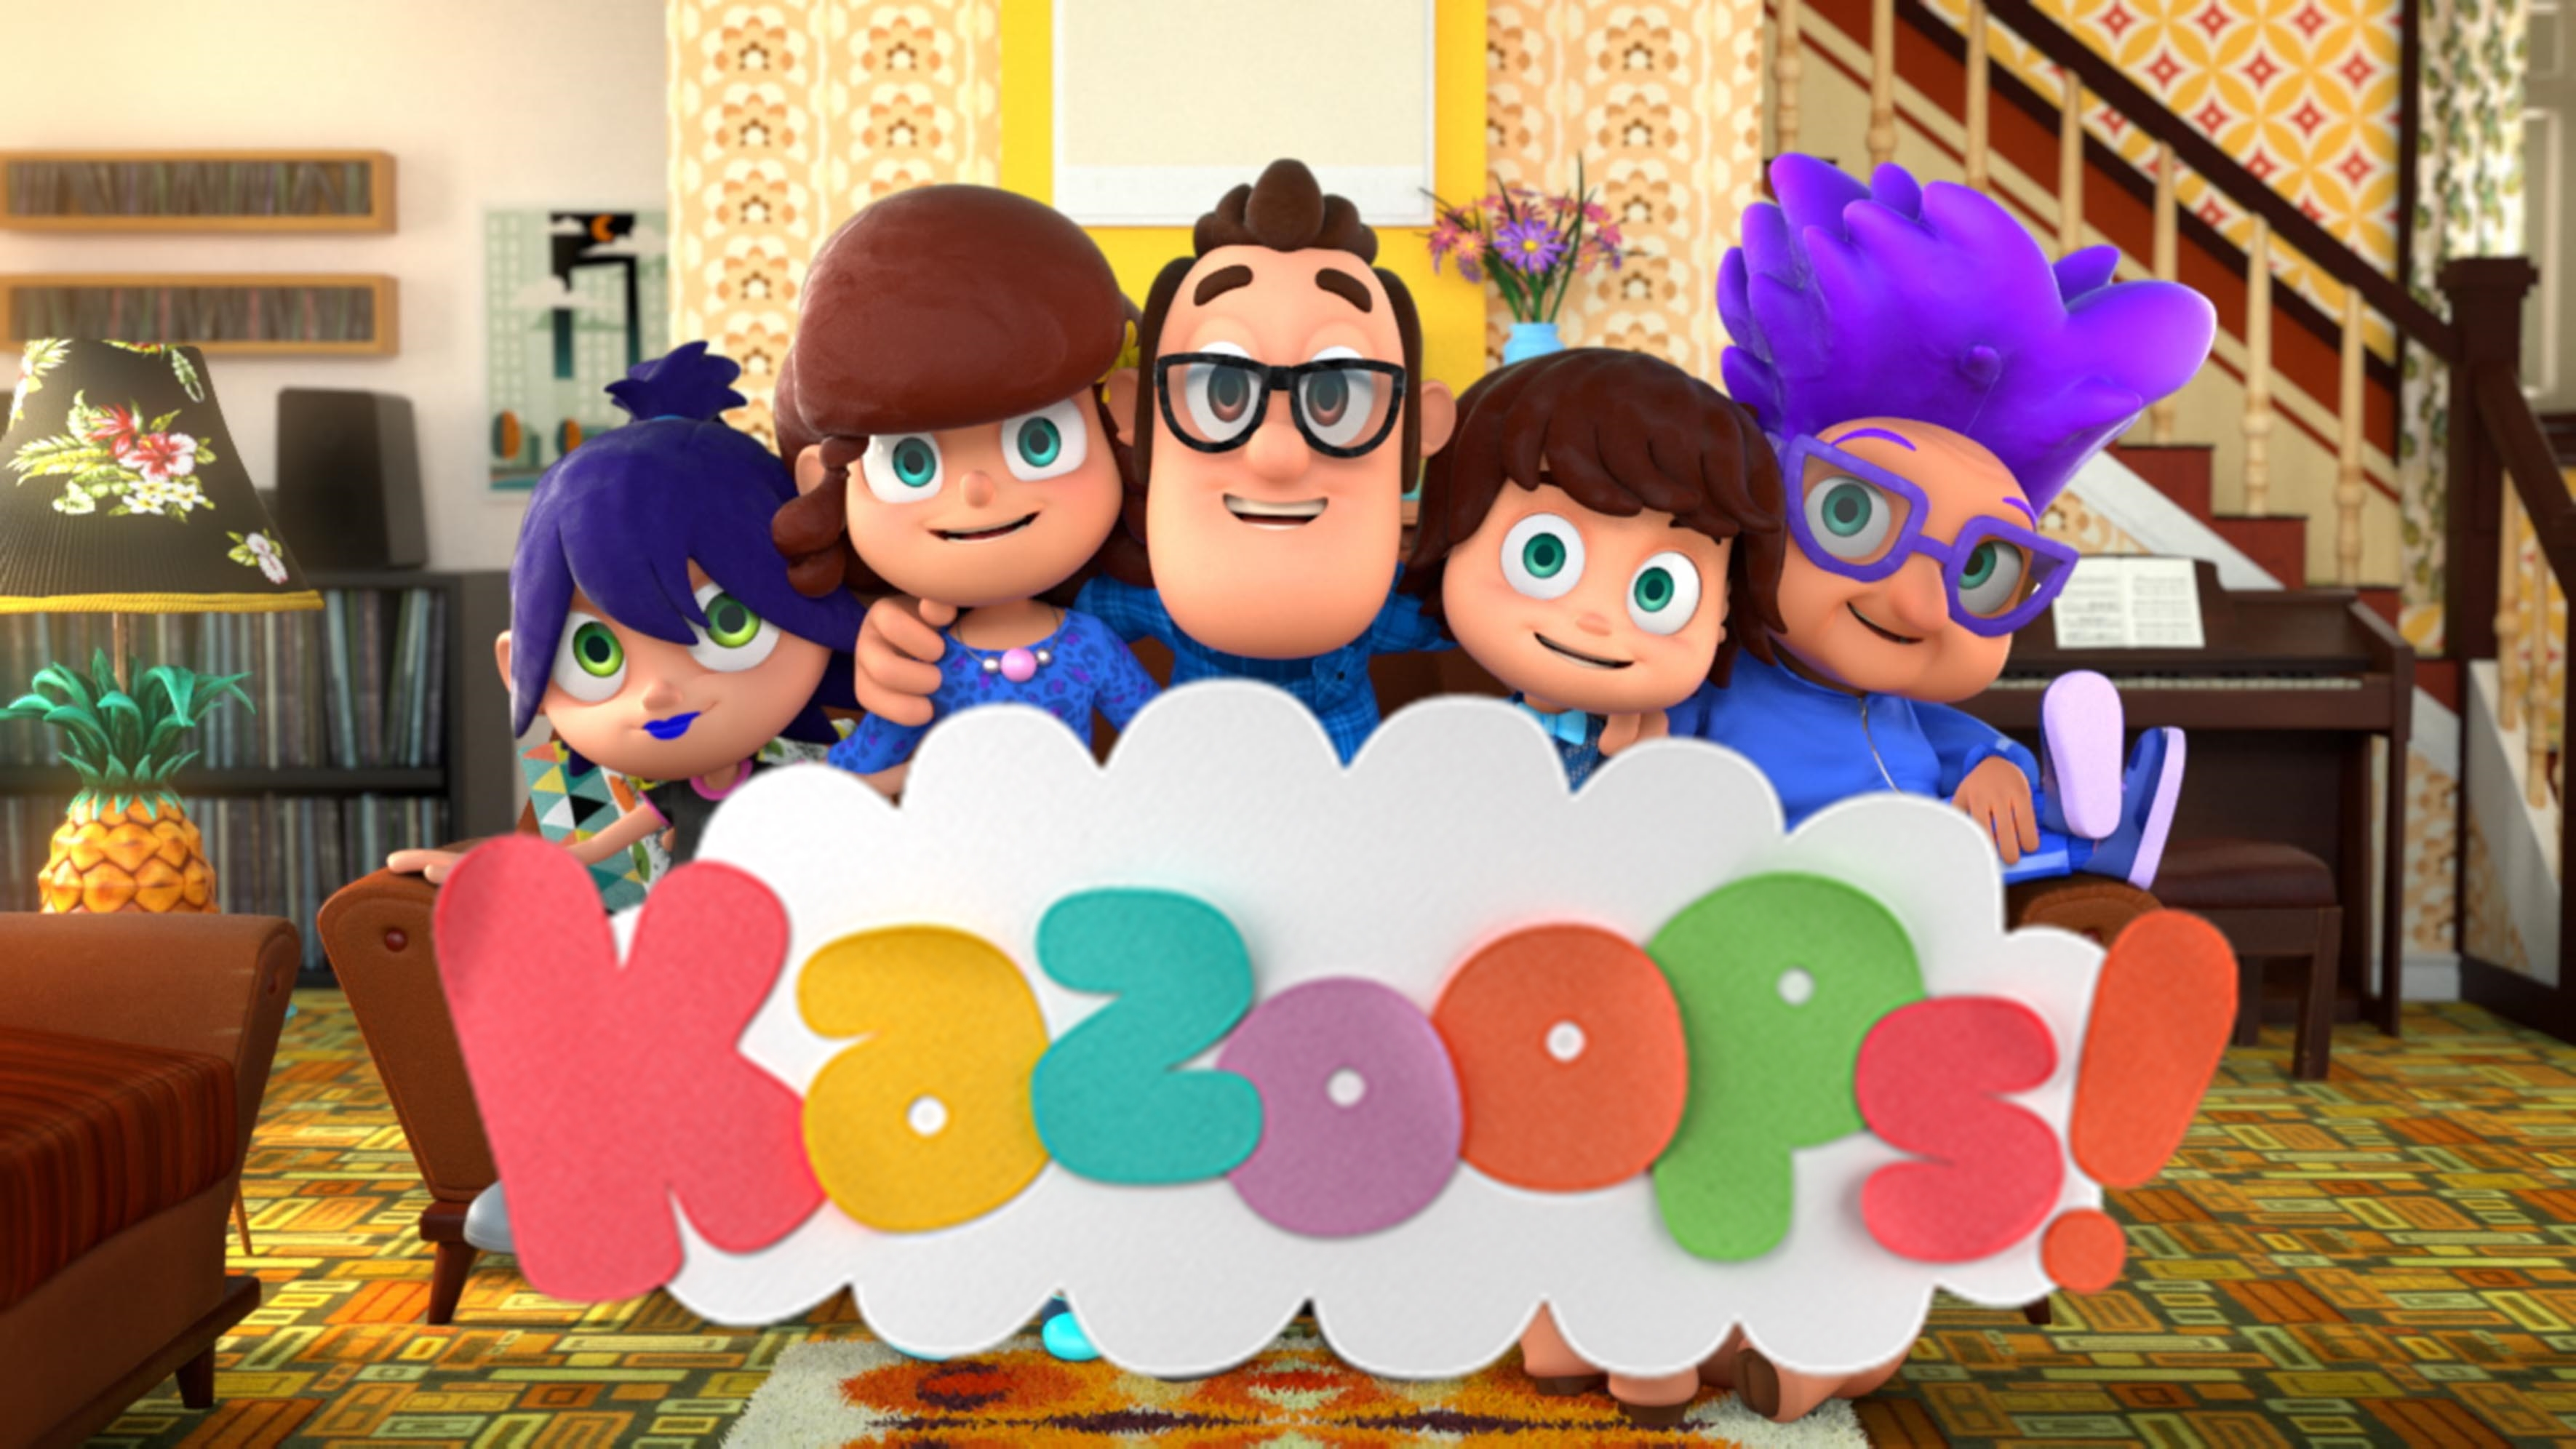 Kazoops – Don't forget to watch on cBeebies at 4:20pm on 20th Jun